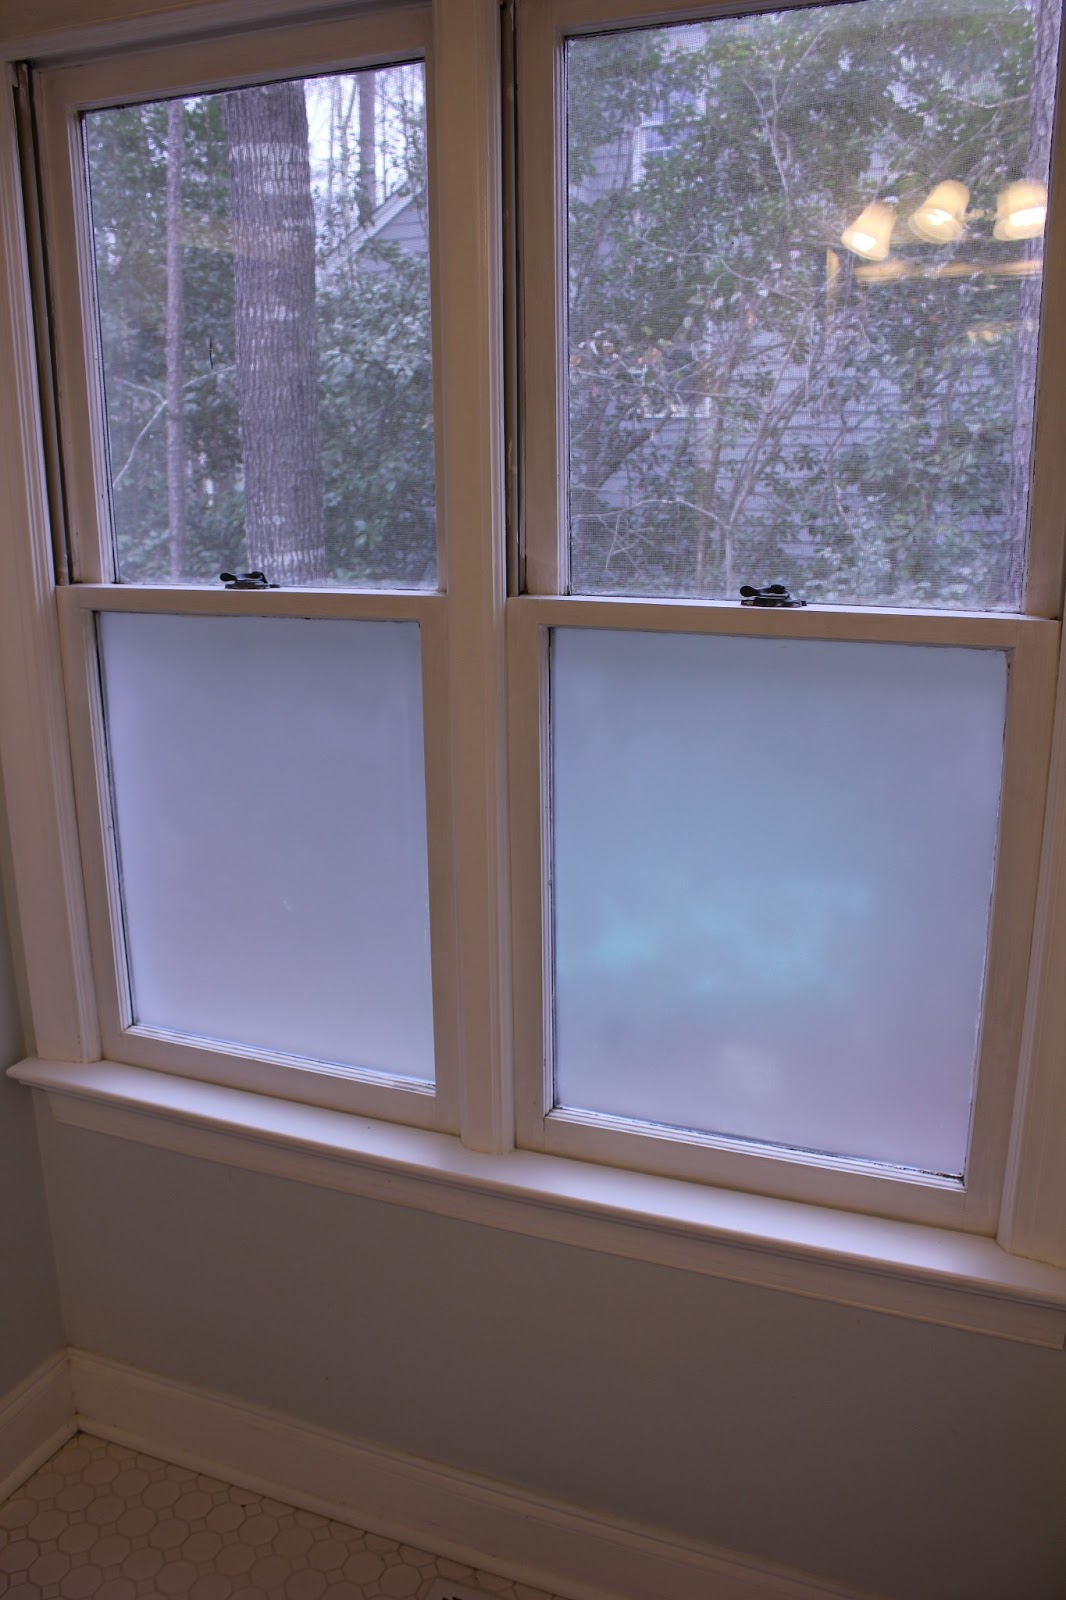 Opaque Bathroom Window 28 Images Bathroom Window Frosted Glass Paint Shower Bathroom Opaque